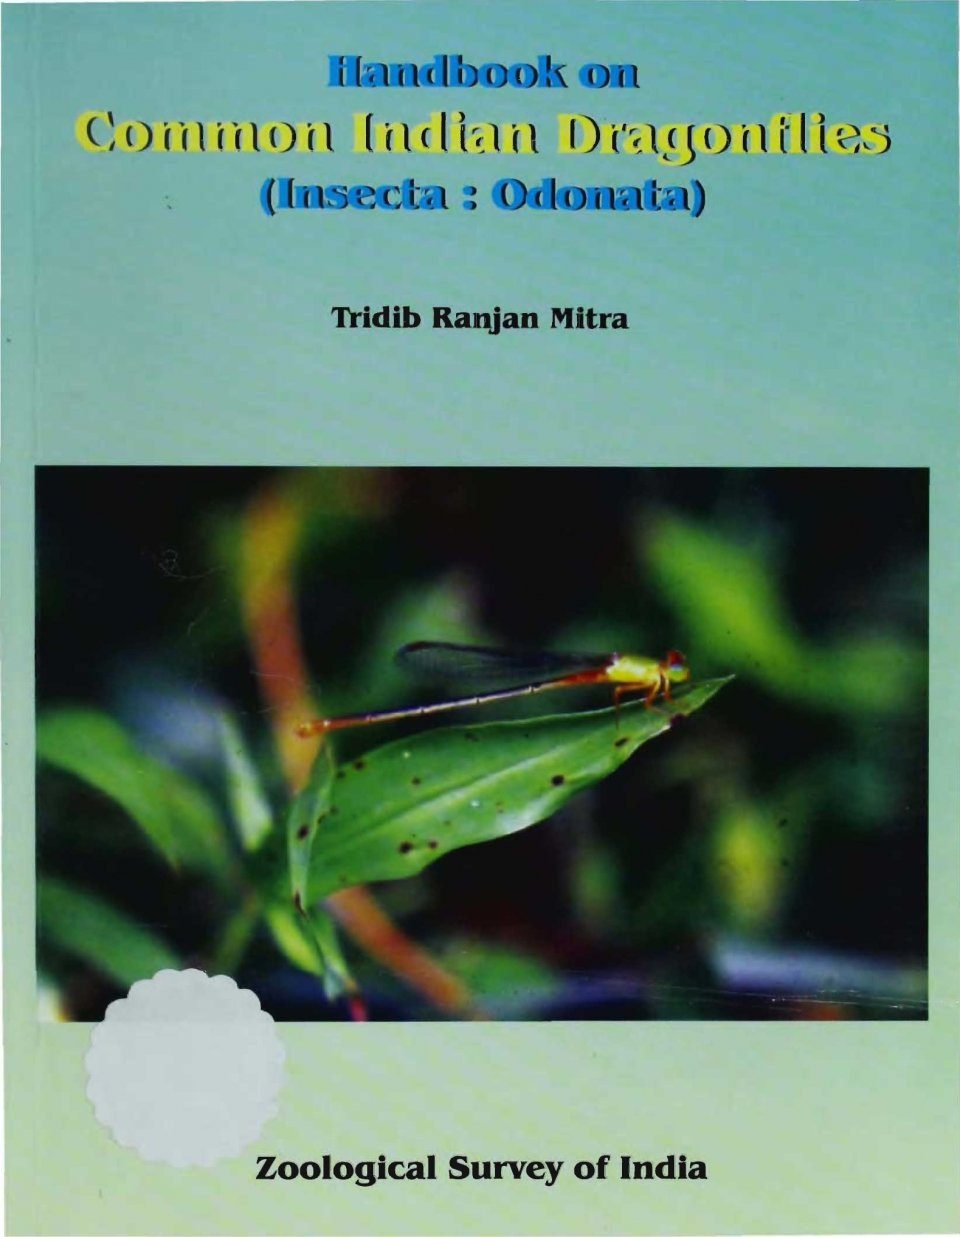 Handbook on Common Indian Dragonflies (Insecta: Odonata)